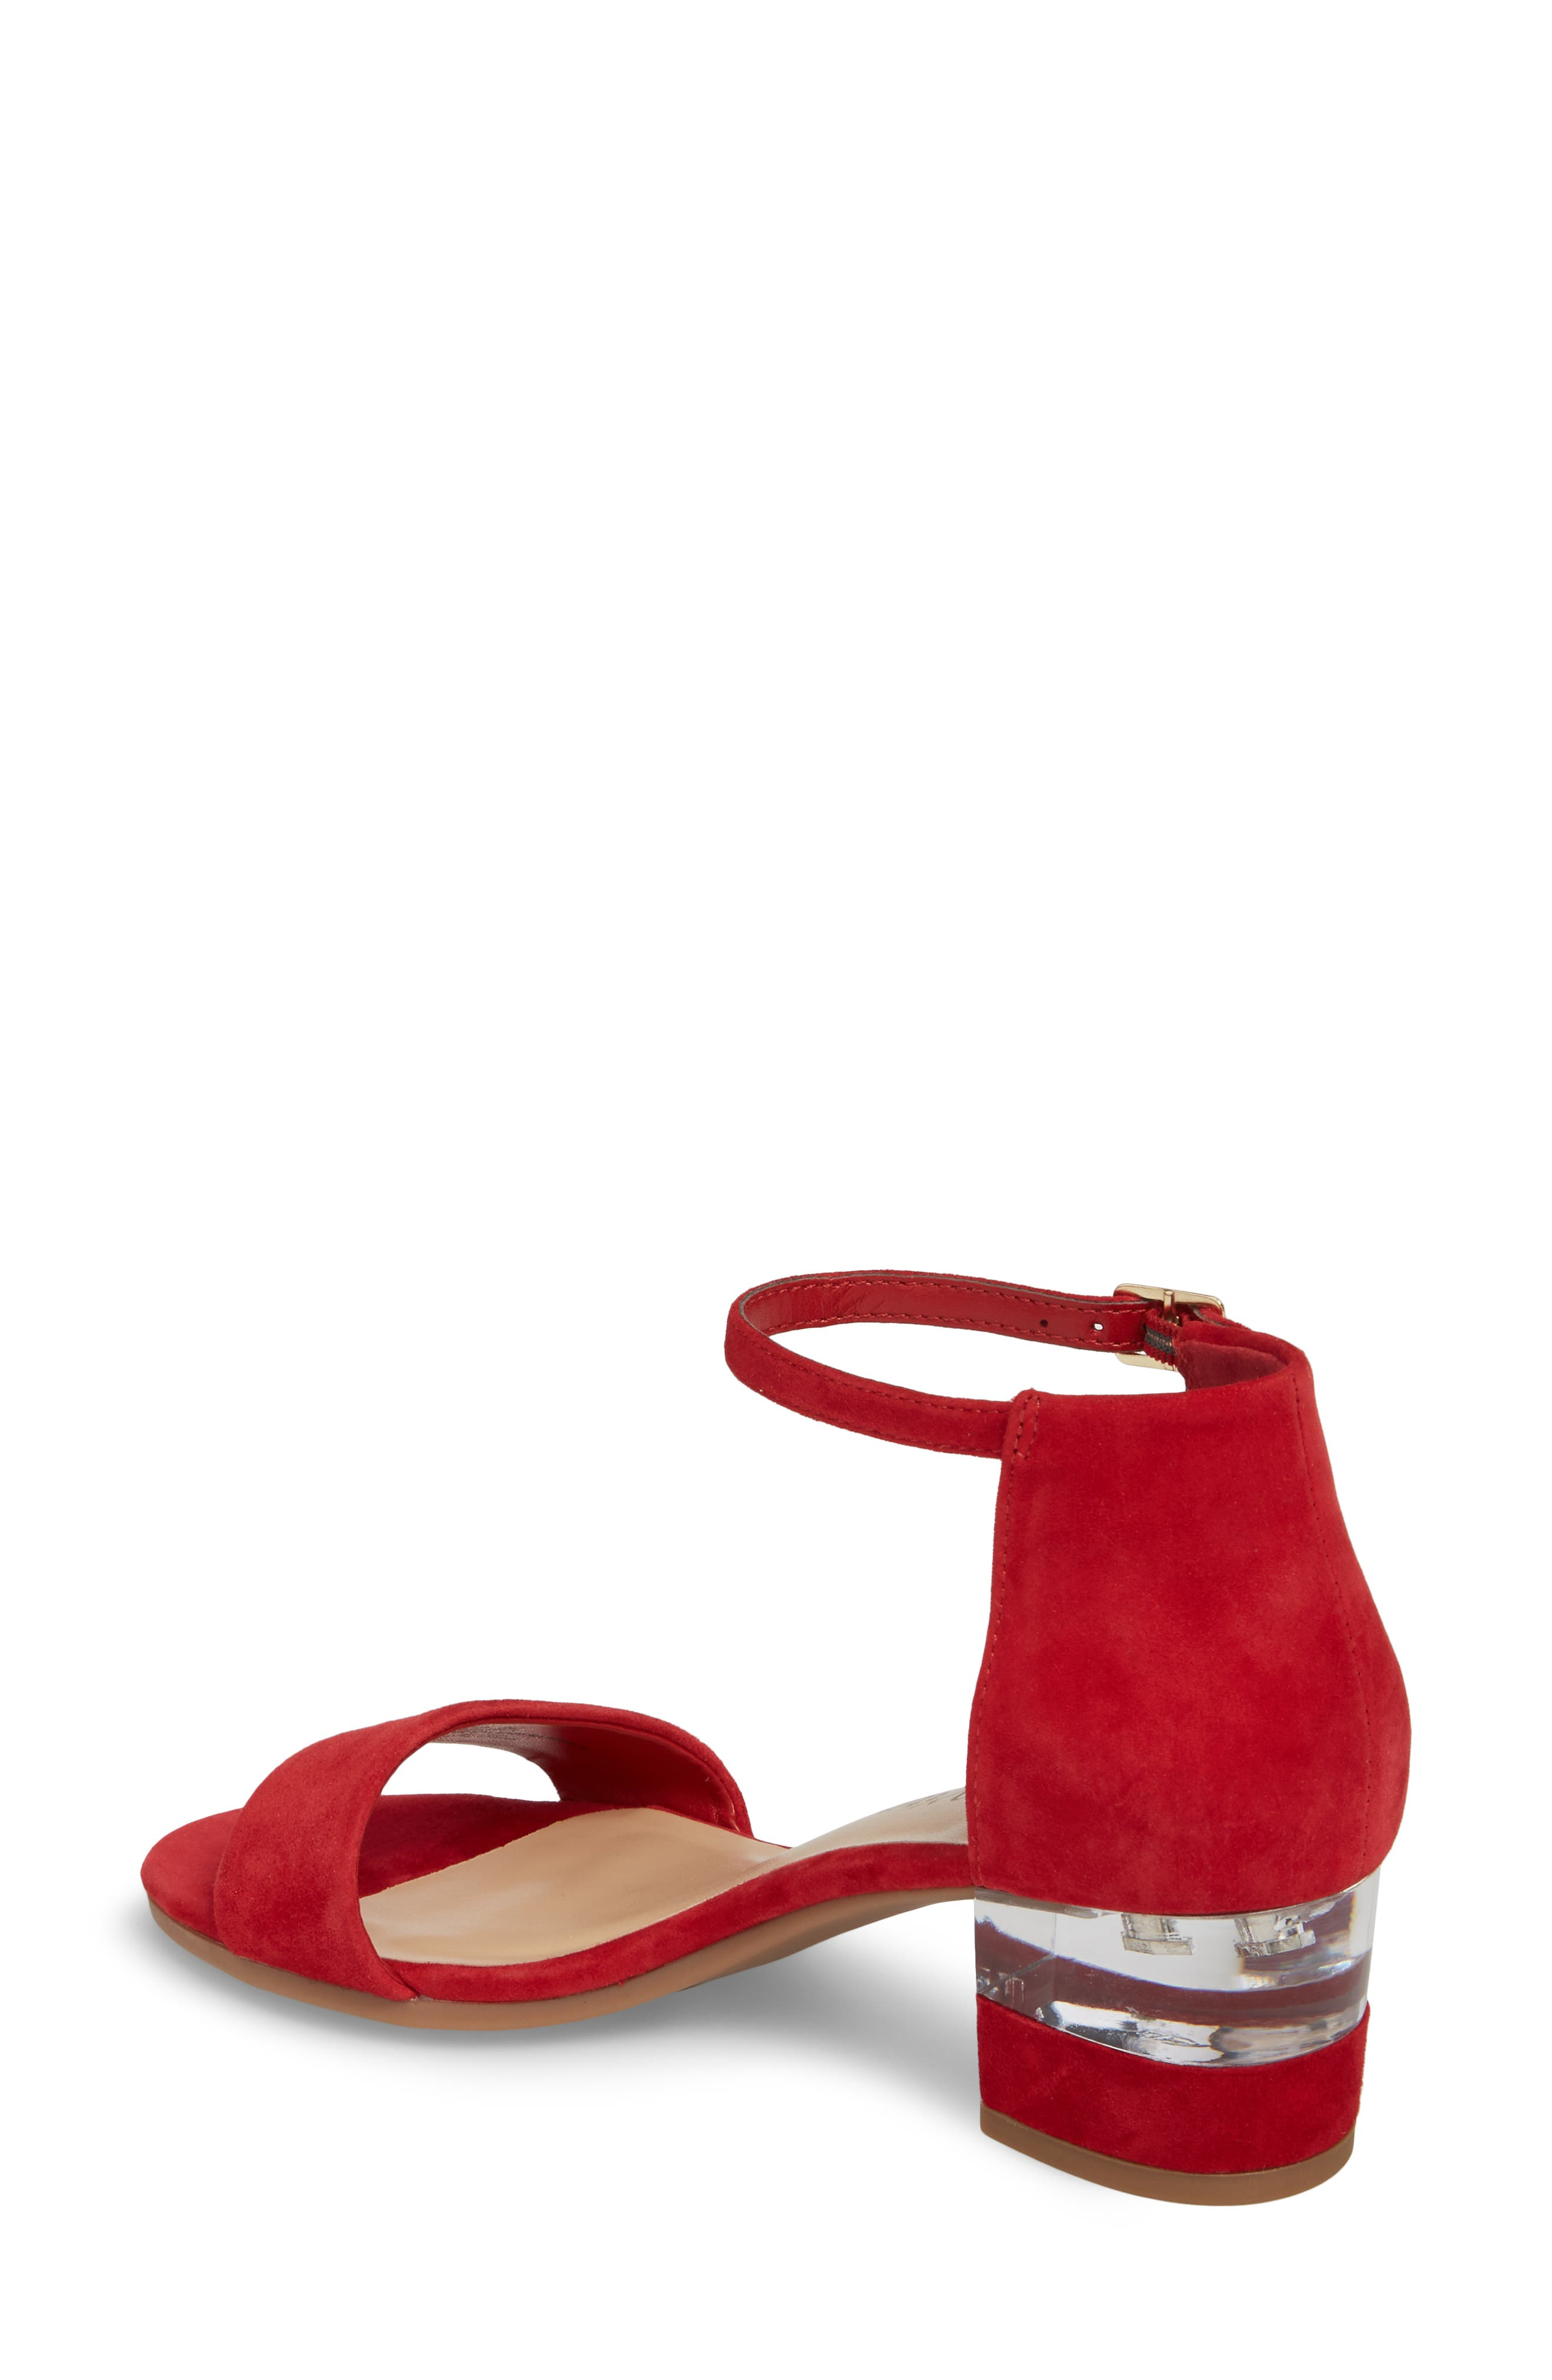 Fitz Block Heel Sandal,                             Alternate thumbnail 2, color,                             Red Suede